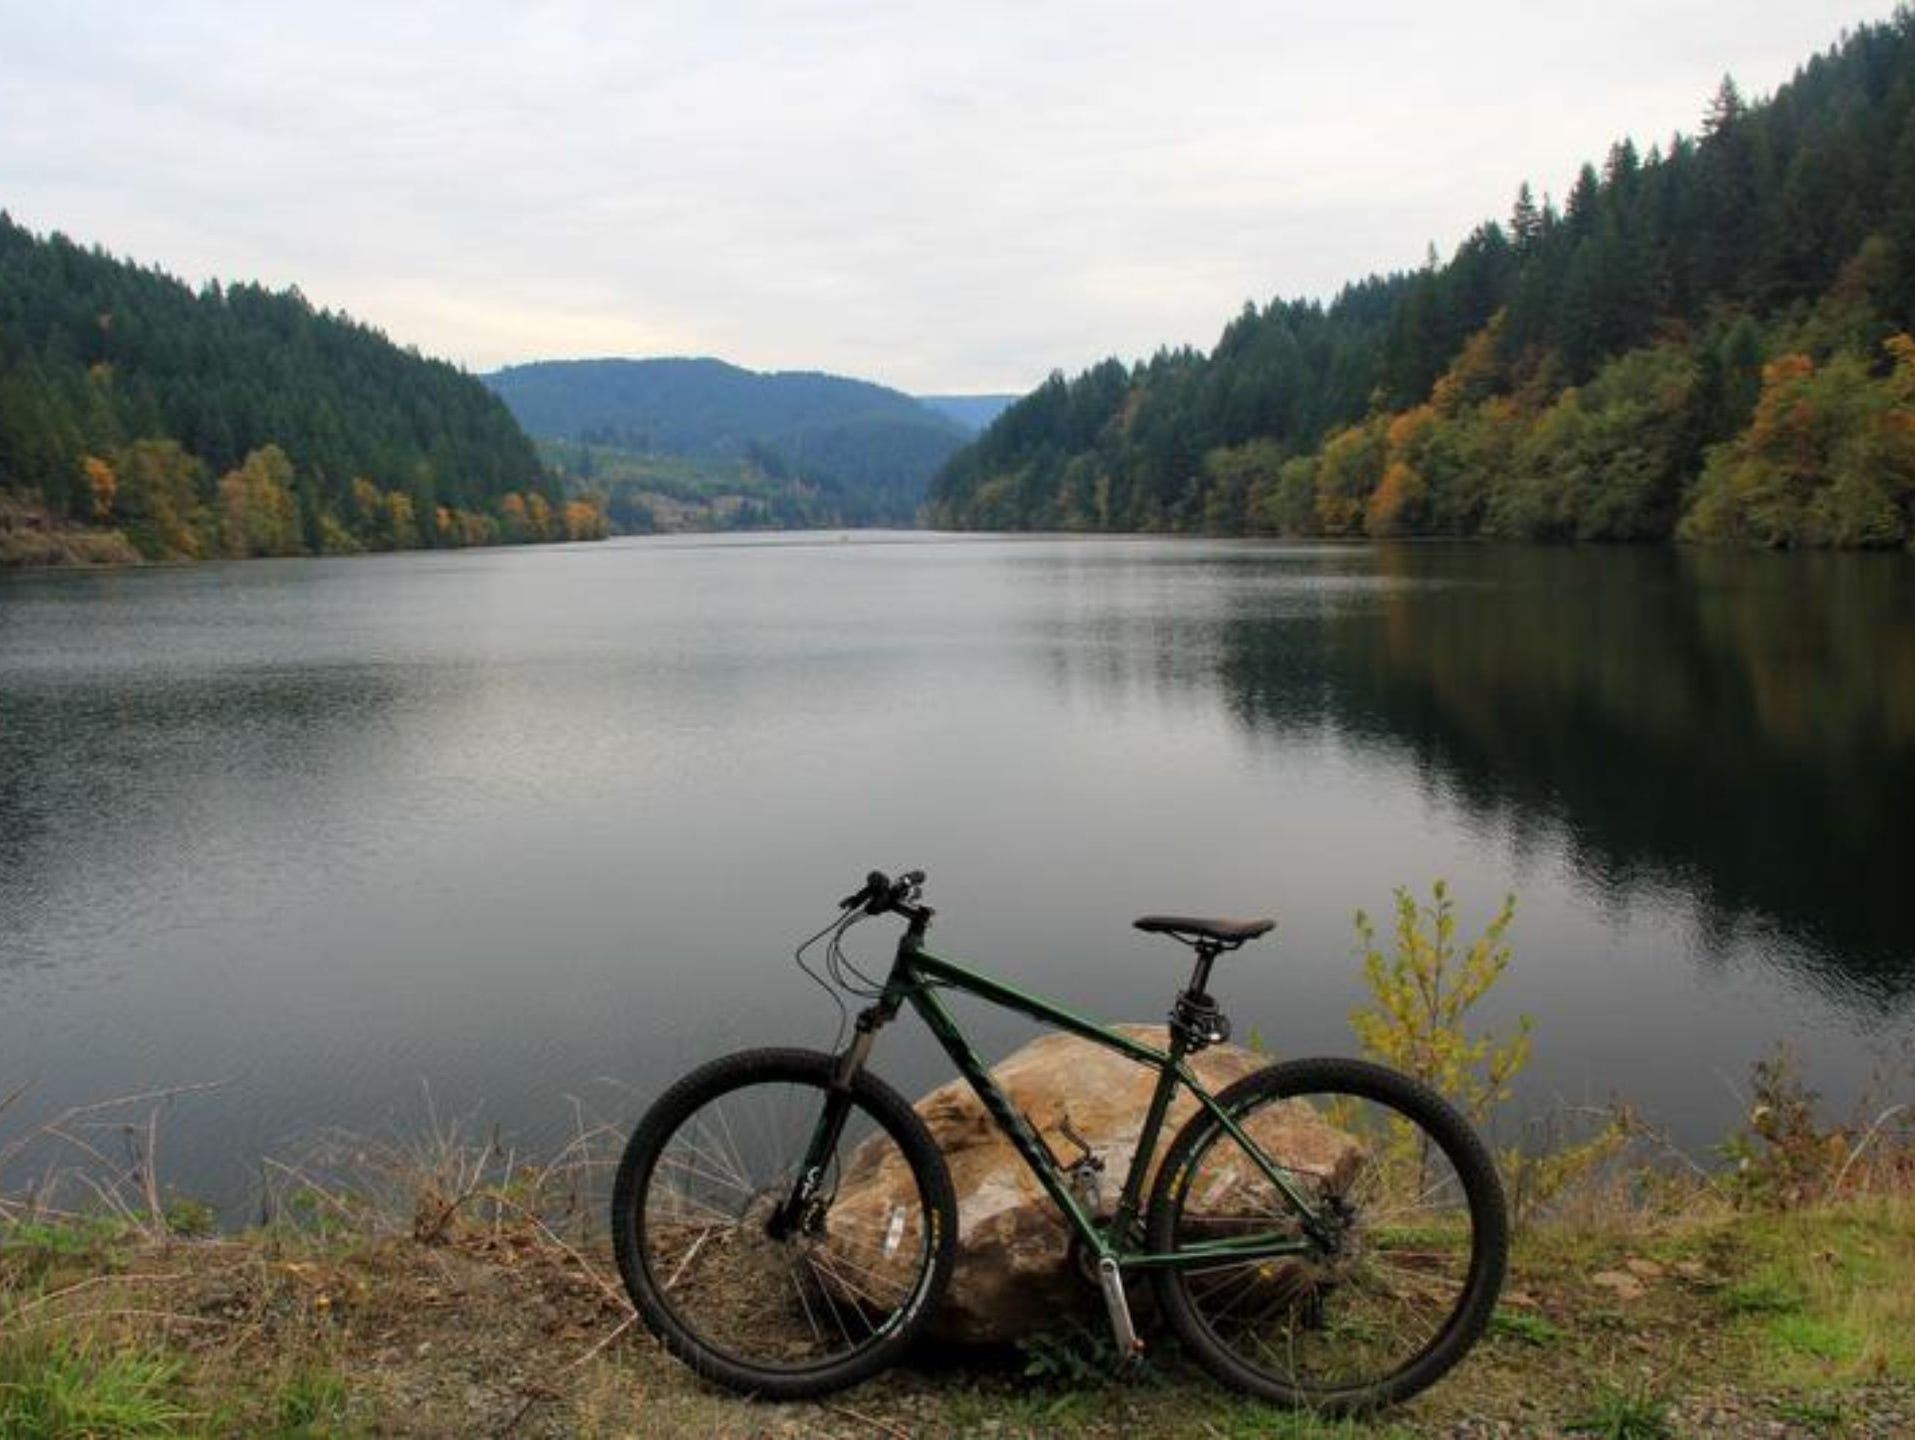 Enjoy photos of the Cascading Rivers Scenic Bikeway.